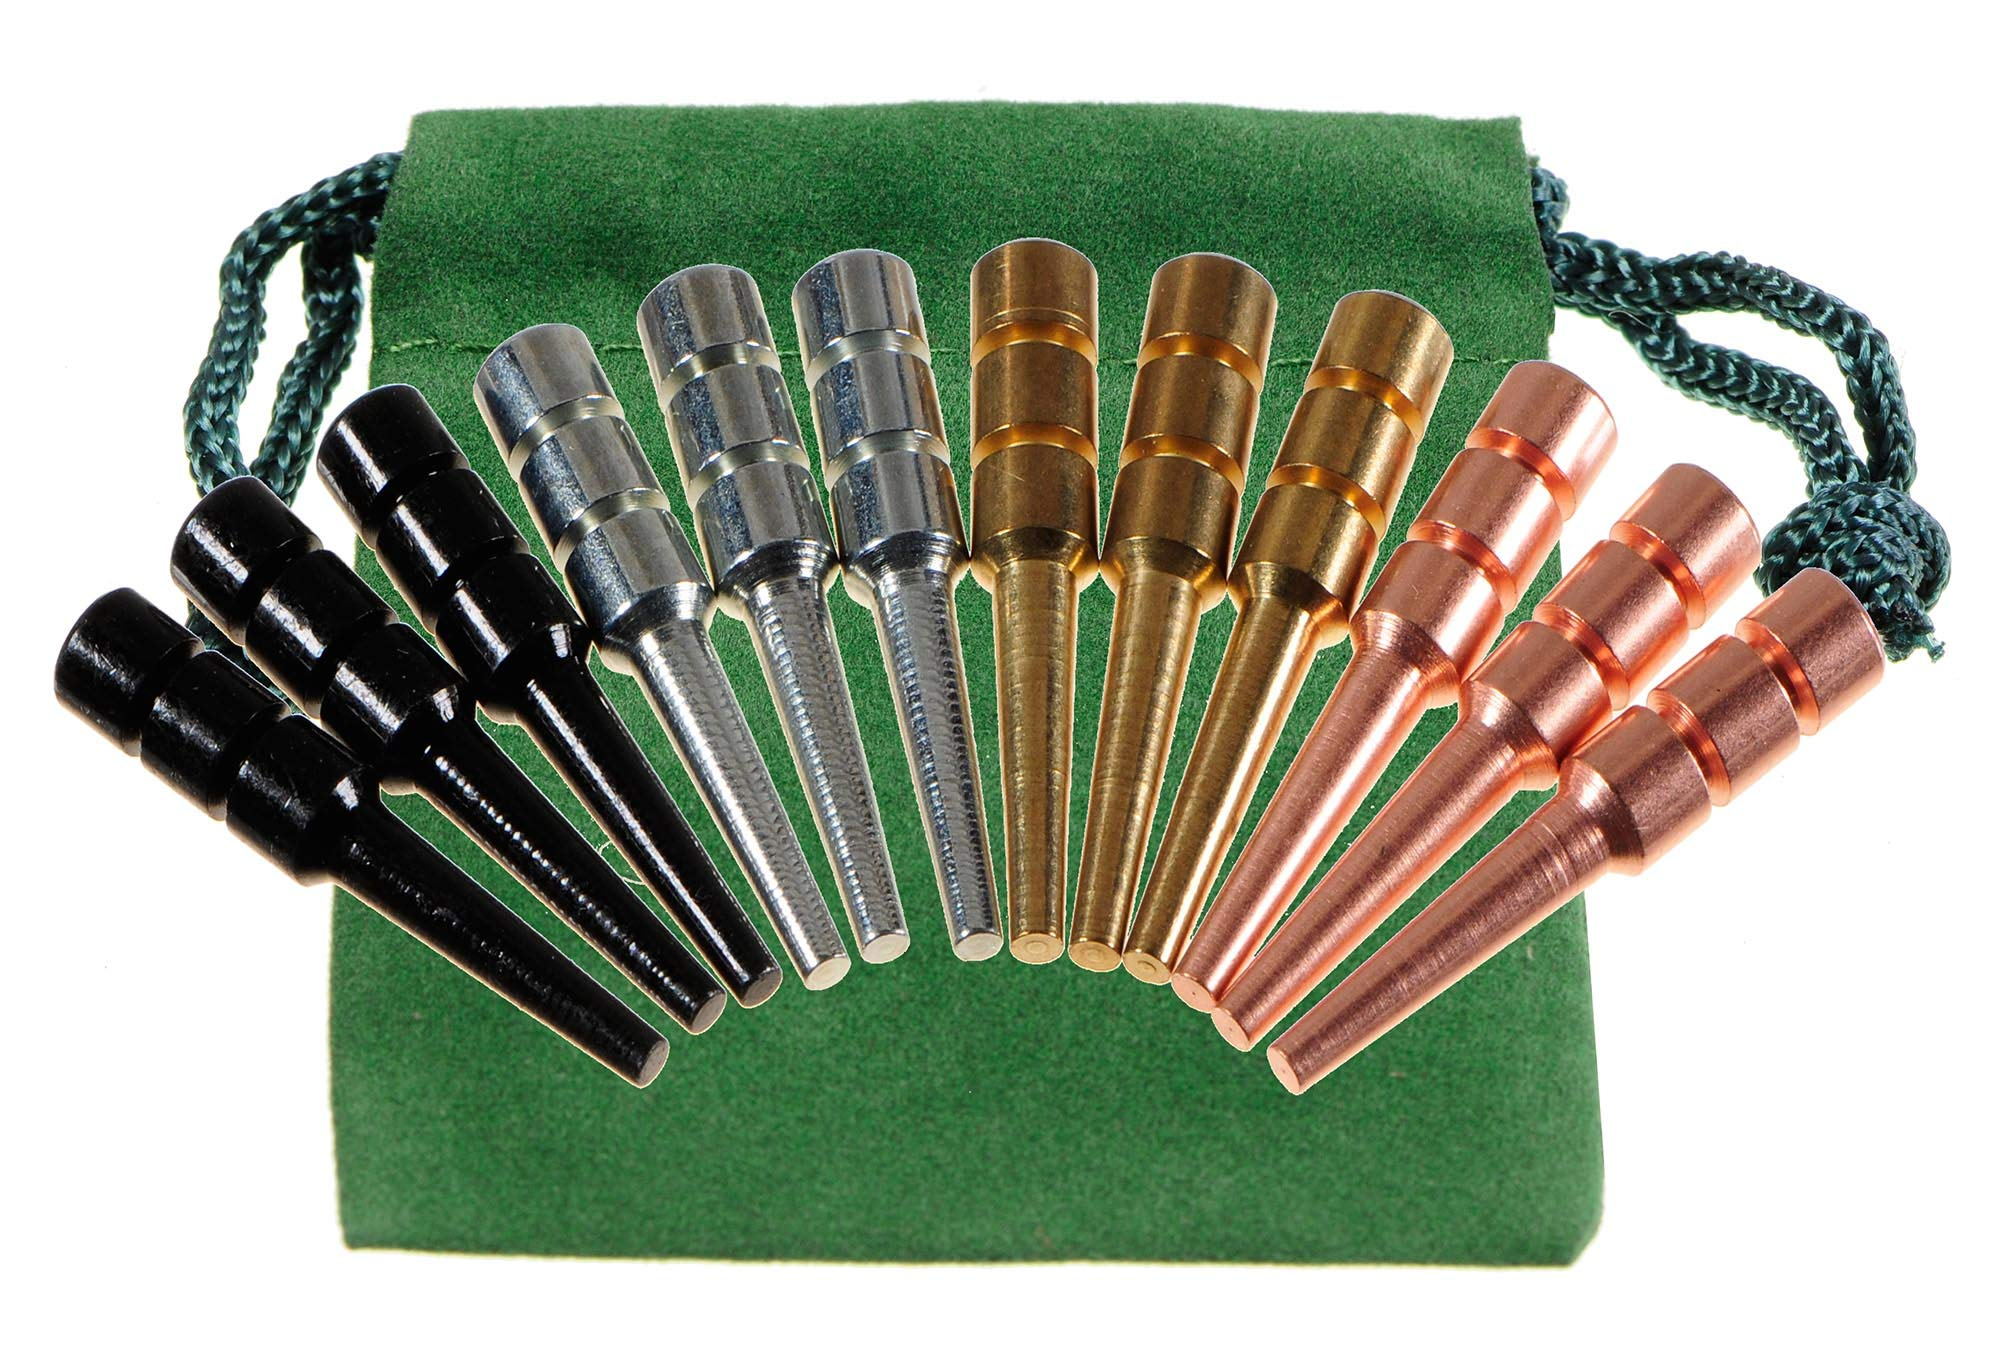 Premium Metal Cribbage Pegs _ Set of 12 _ in Four Different Colors _ 1 5/16'' Tall; Tapered to Fit 1/8 holes _ Bonus Green Velveteen Drawstring Storage Pouch by Deluxe Games and Puzzles